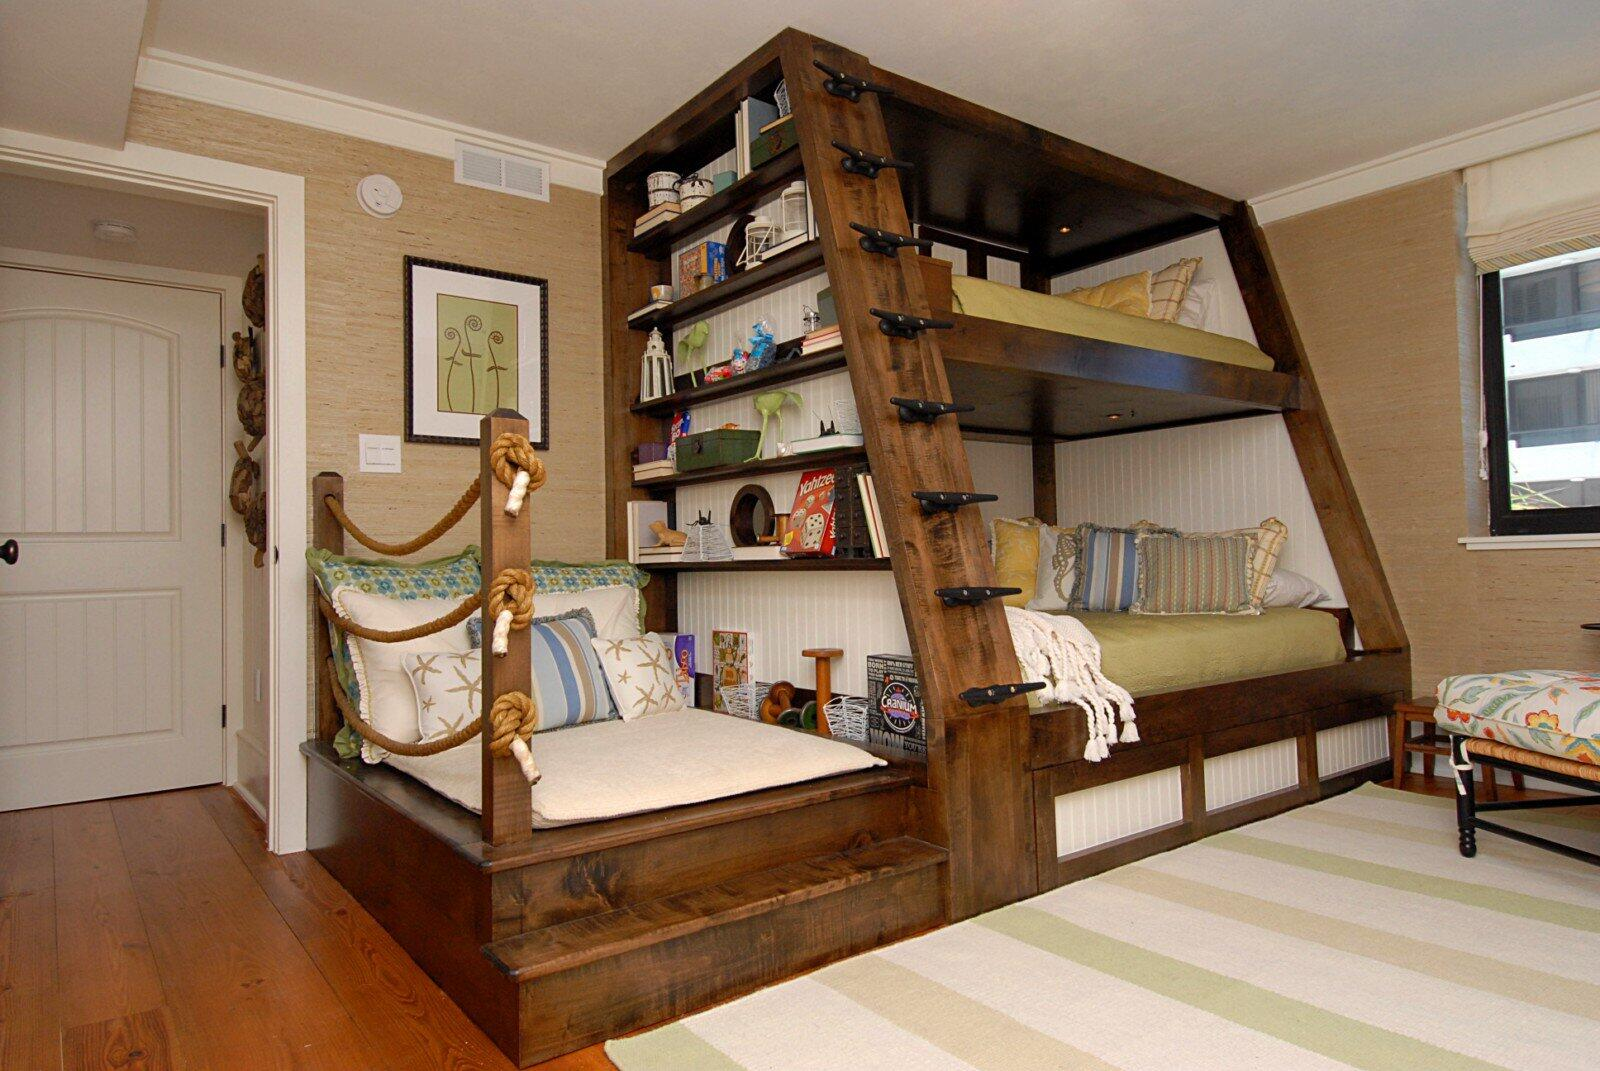 A Bunk Bed with a Reading Nook http://t.co/7rDhanvZ8S